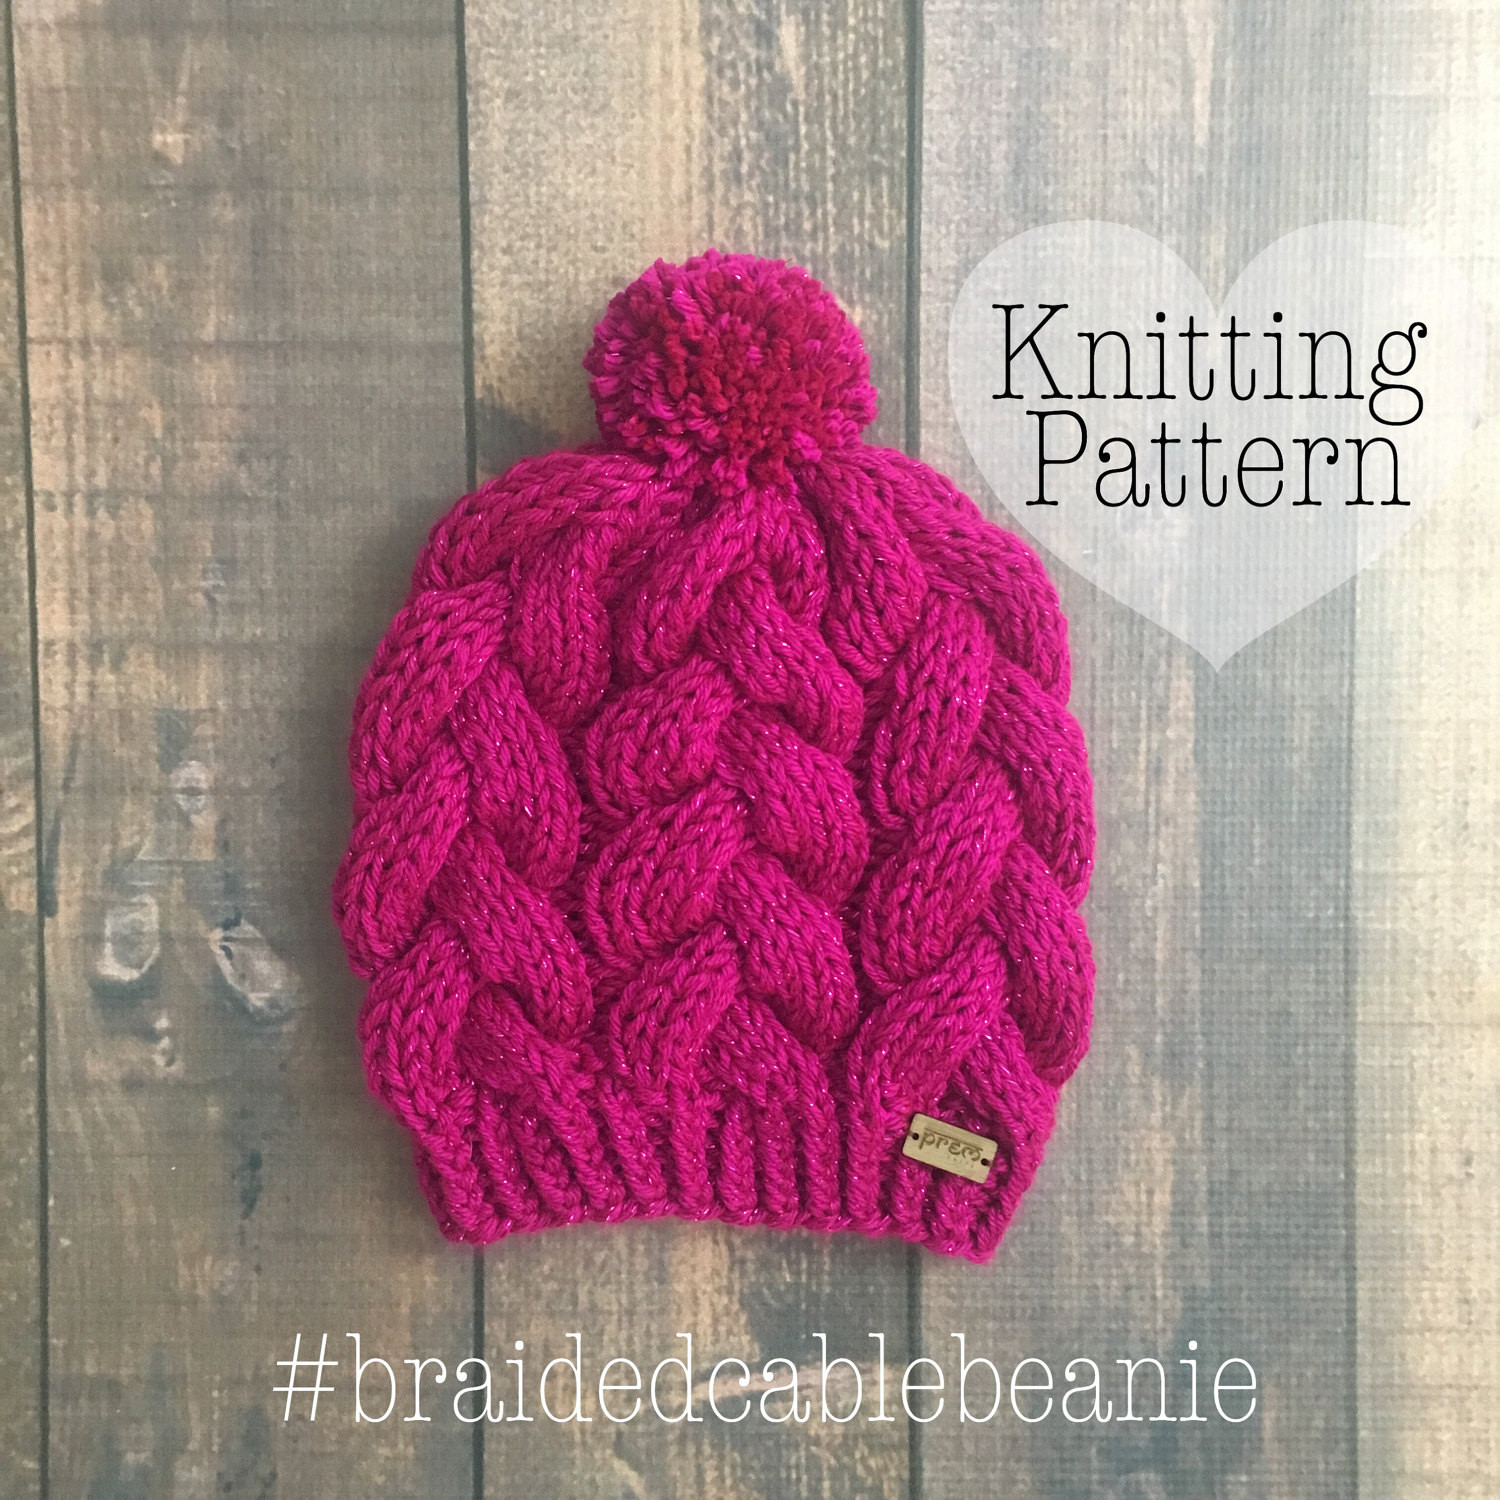 Awesome Knitting Pattern Braided Cable Beanie Cable Knitting Patterns Of Beautiful 41 Models Cable Knitting Patterns